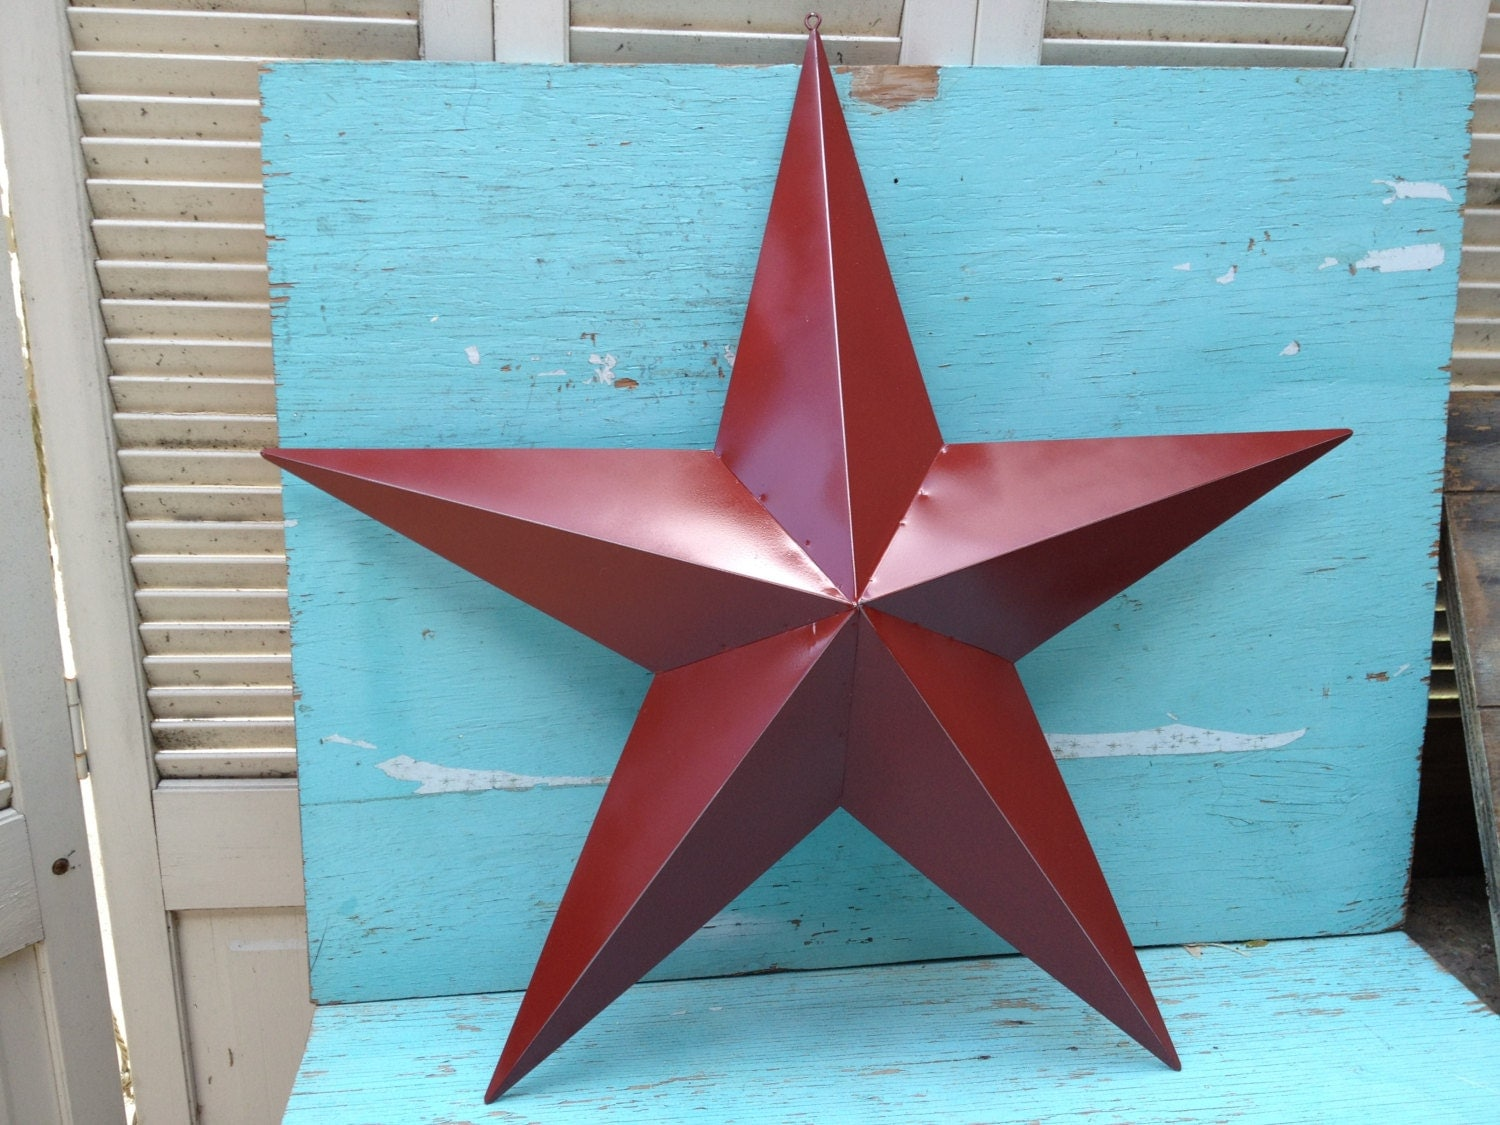 Star Wall Decor Ideas: Large Rustic Red Distressed Metal Star Wall Hanger Home Decor